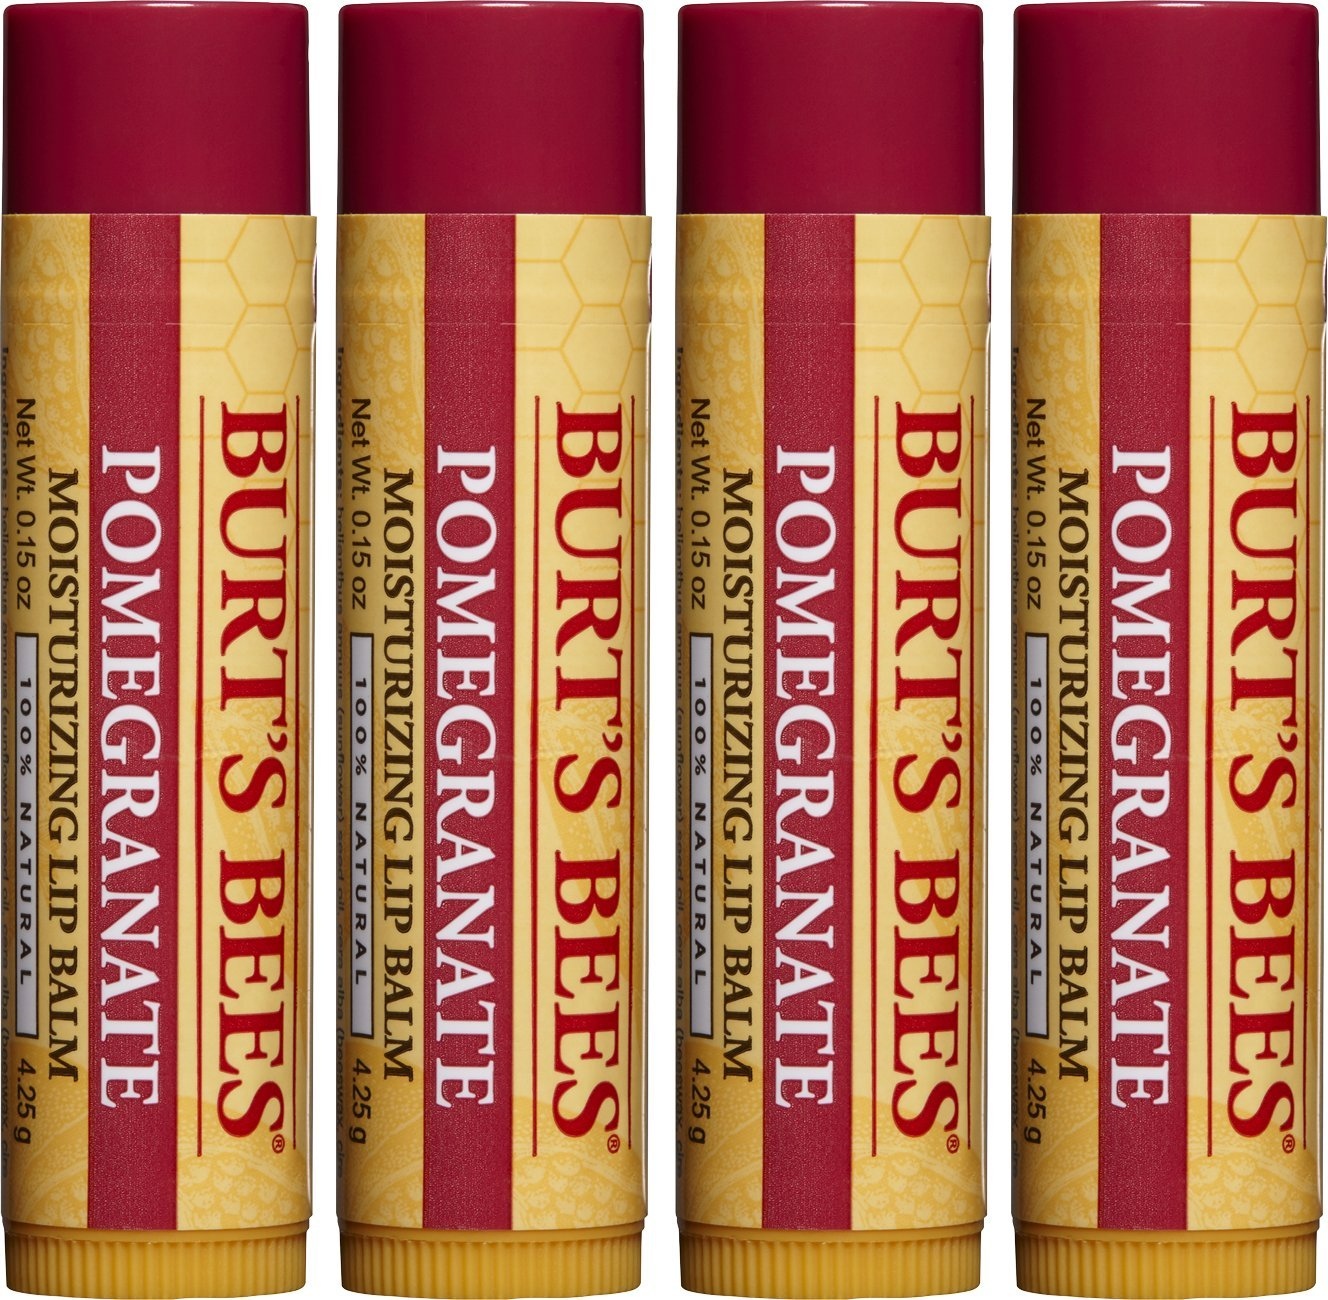 Burt's Bees 100% Natural Moisturizing Lip Balm, Pomegranate with Beeswax and Fruit Extracts - 4 Tubes